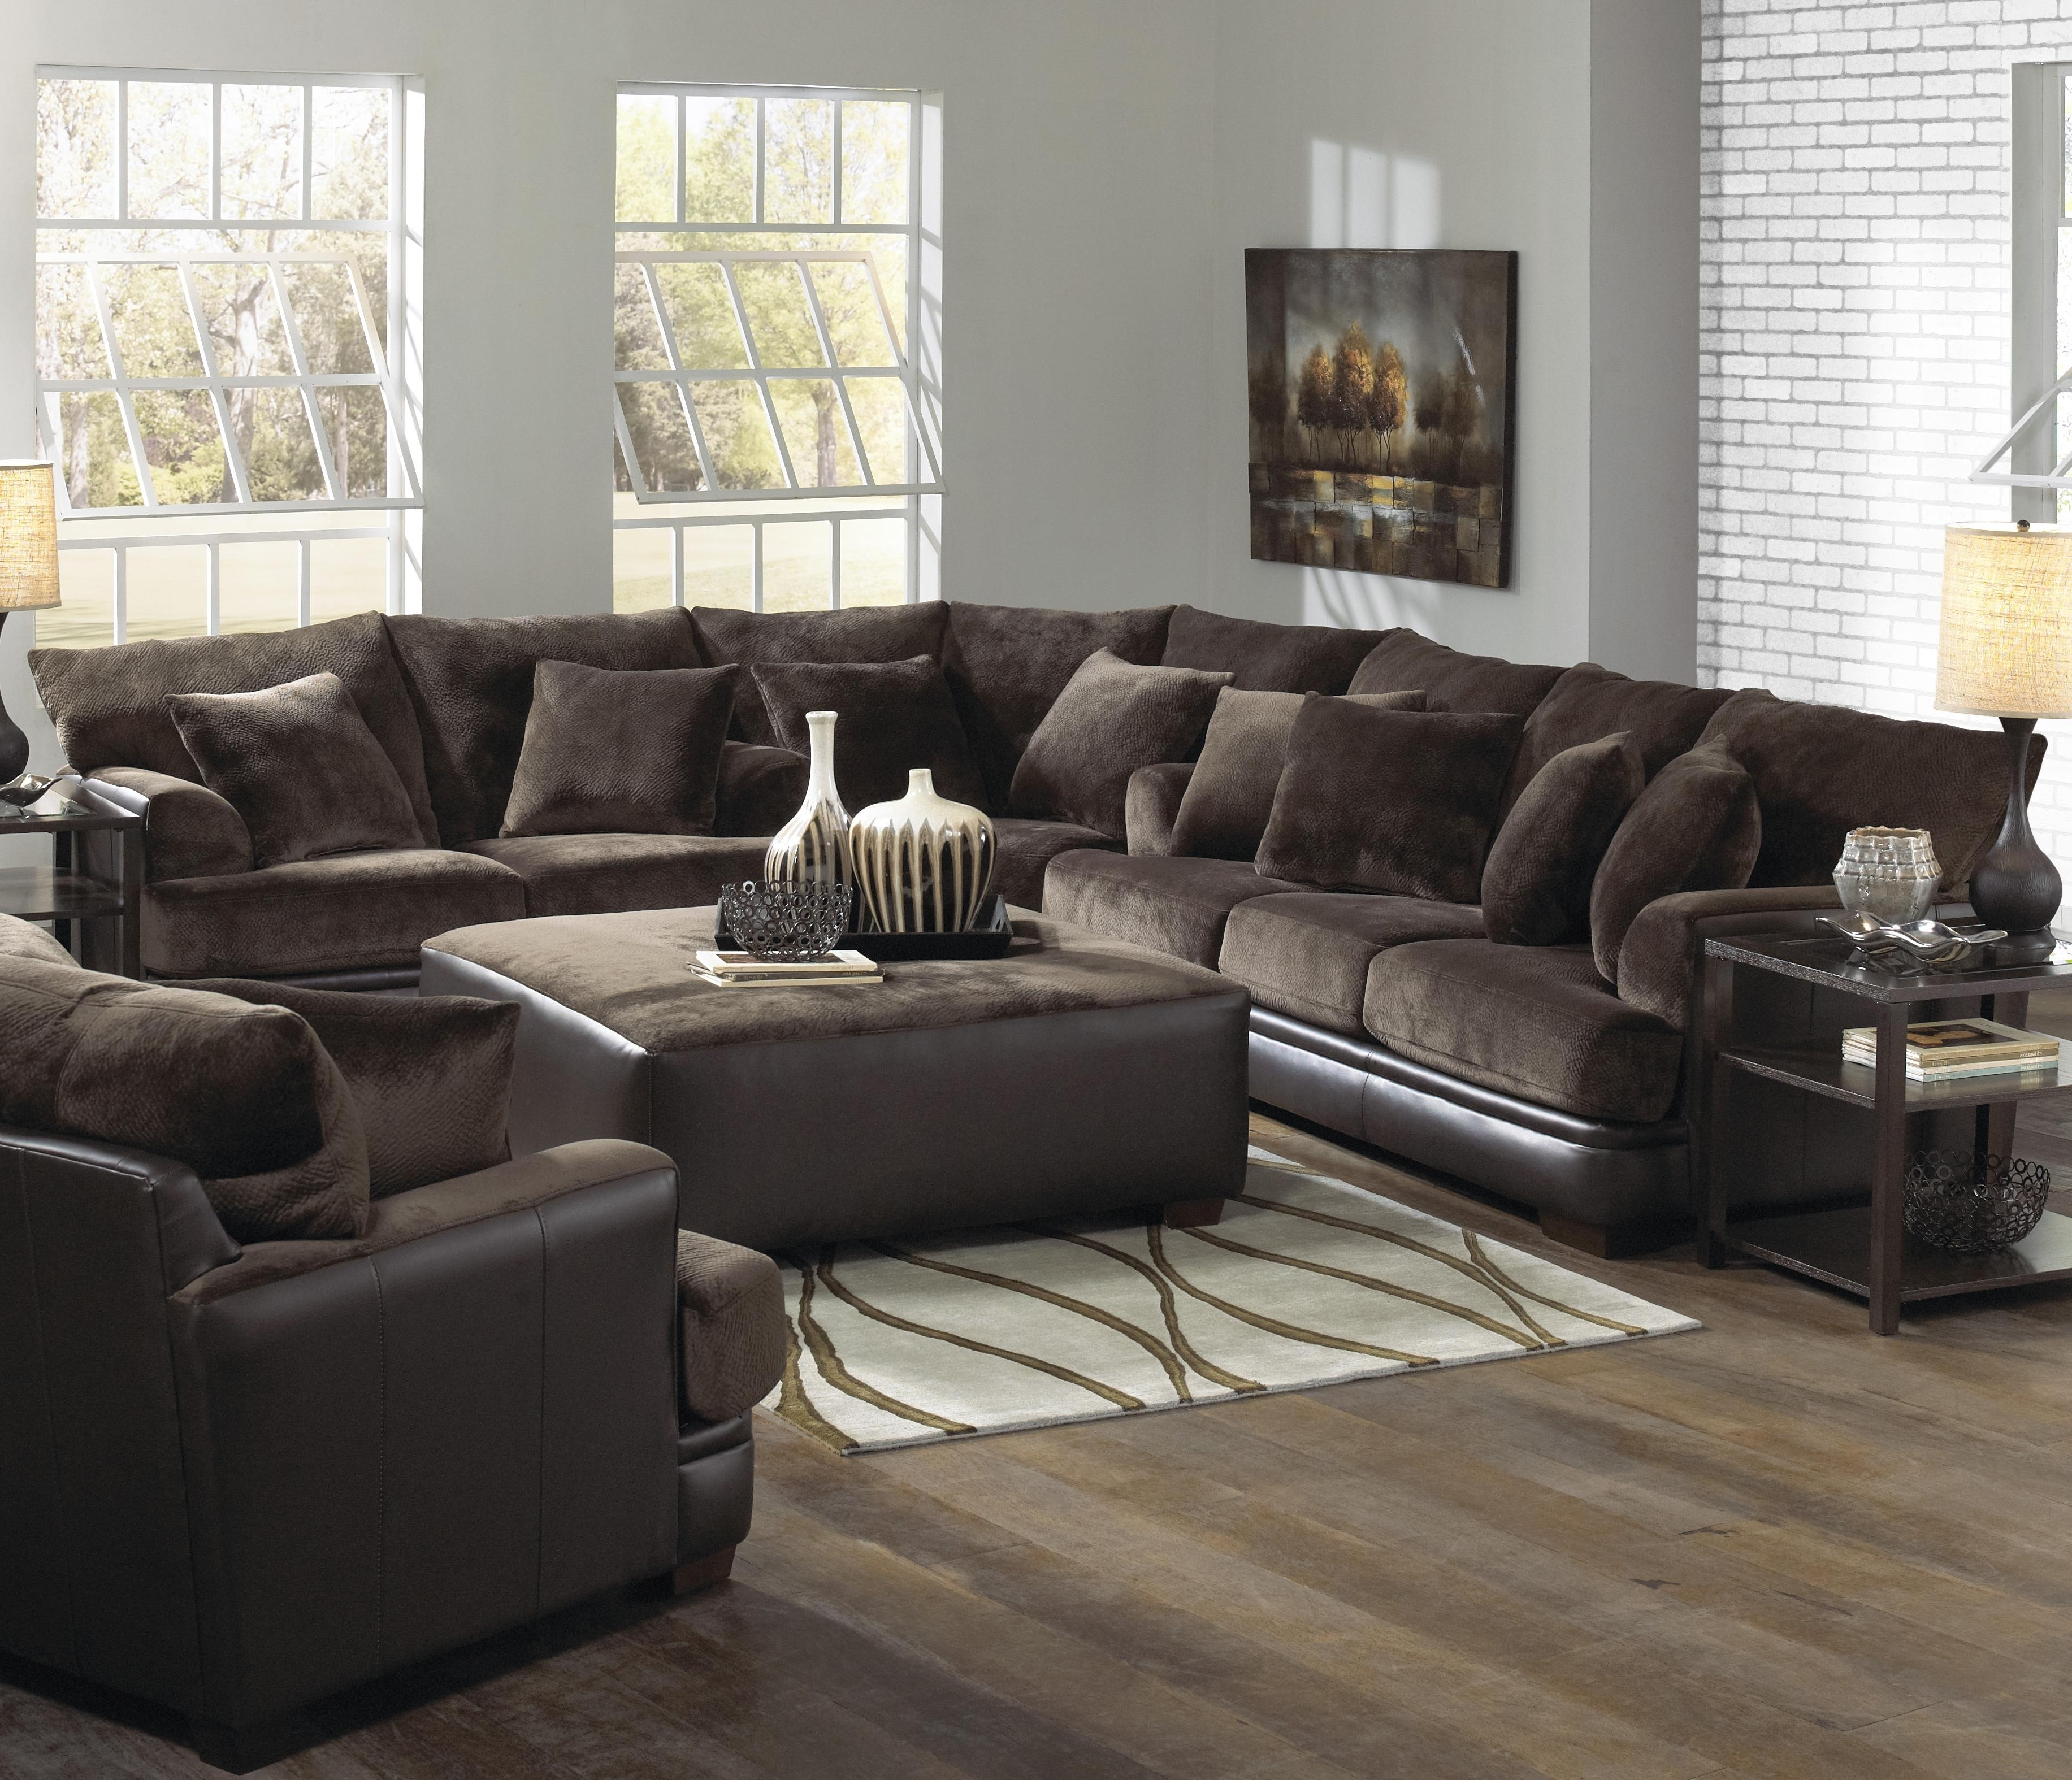 Favorite Amazing Large U Shaped Sectional Sofa 18 On Reclining Sectional Throughout Reclining U Shaped Sectionals (View 3 of 20)